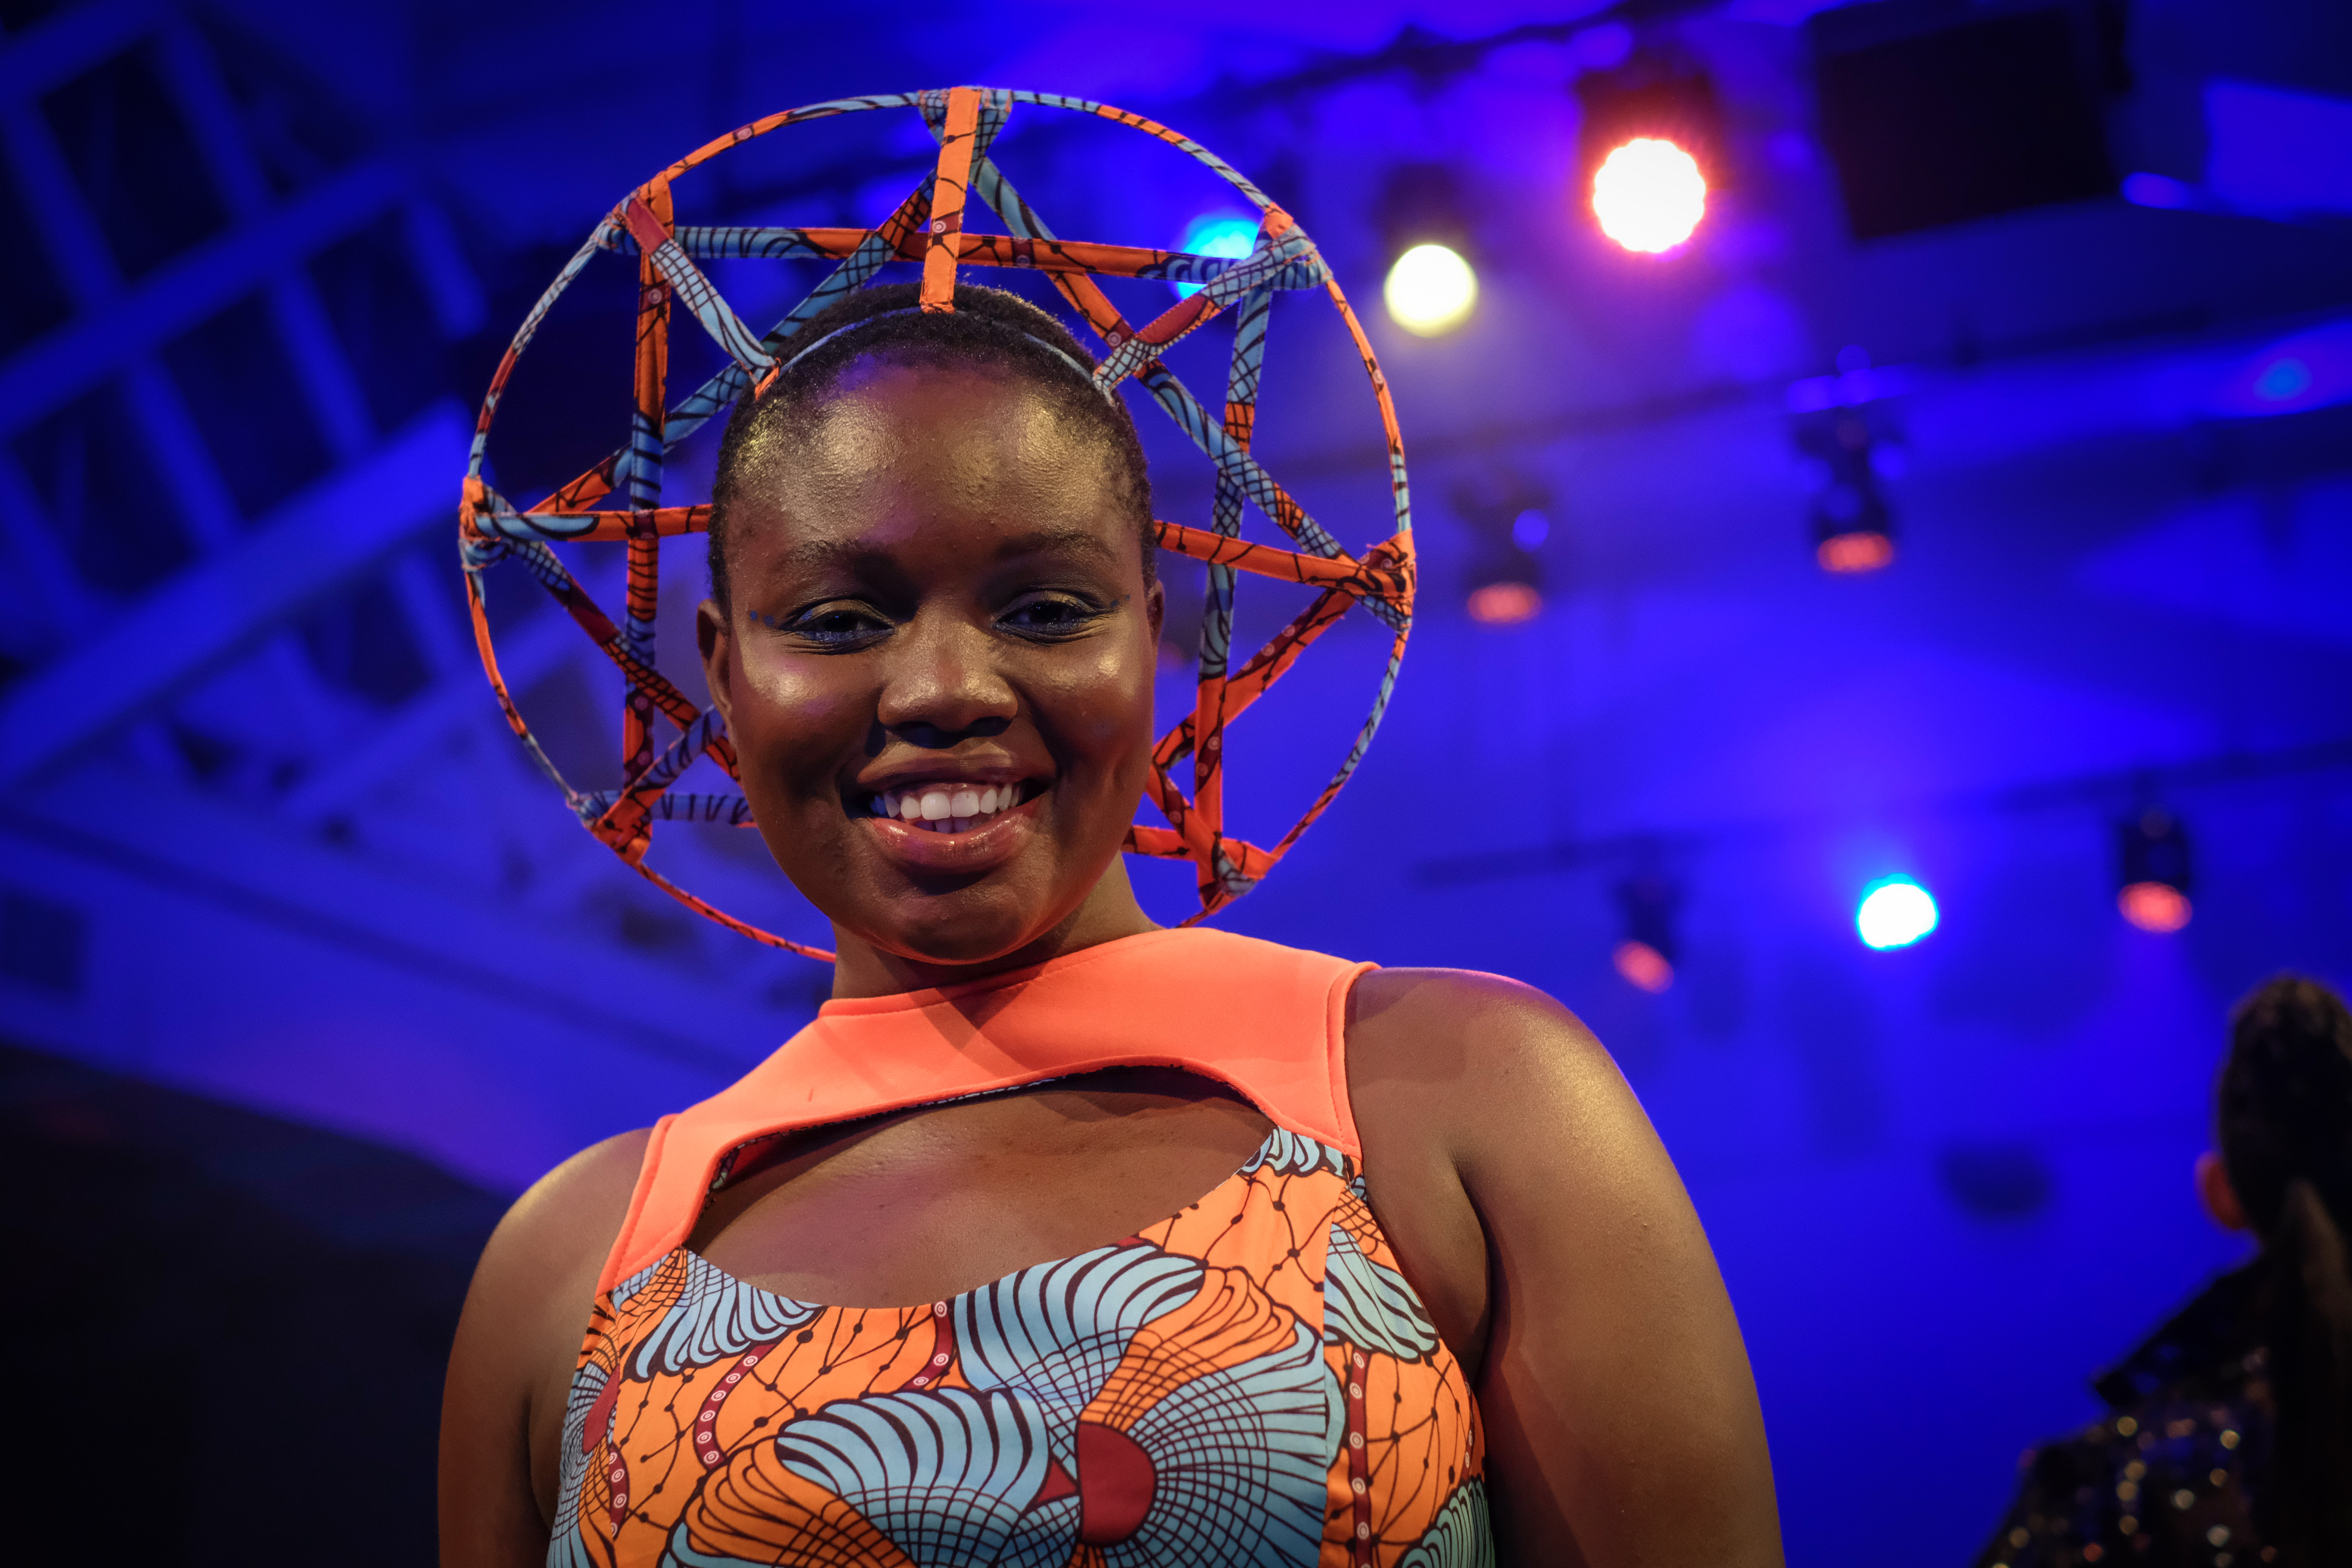 f6540bd9c78 A model showcases a design inspired by the Marvel comic and upcoming film  Black Panther during a Welcome to Wakanda event held during New York Fashion  Week ...